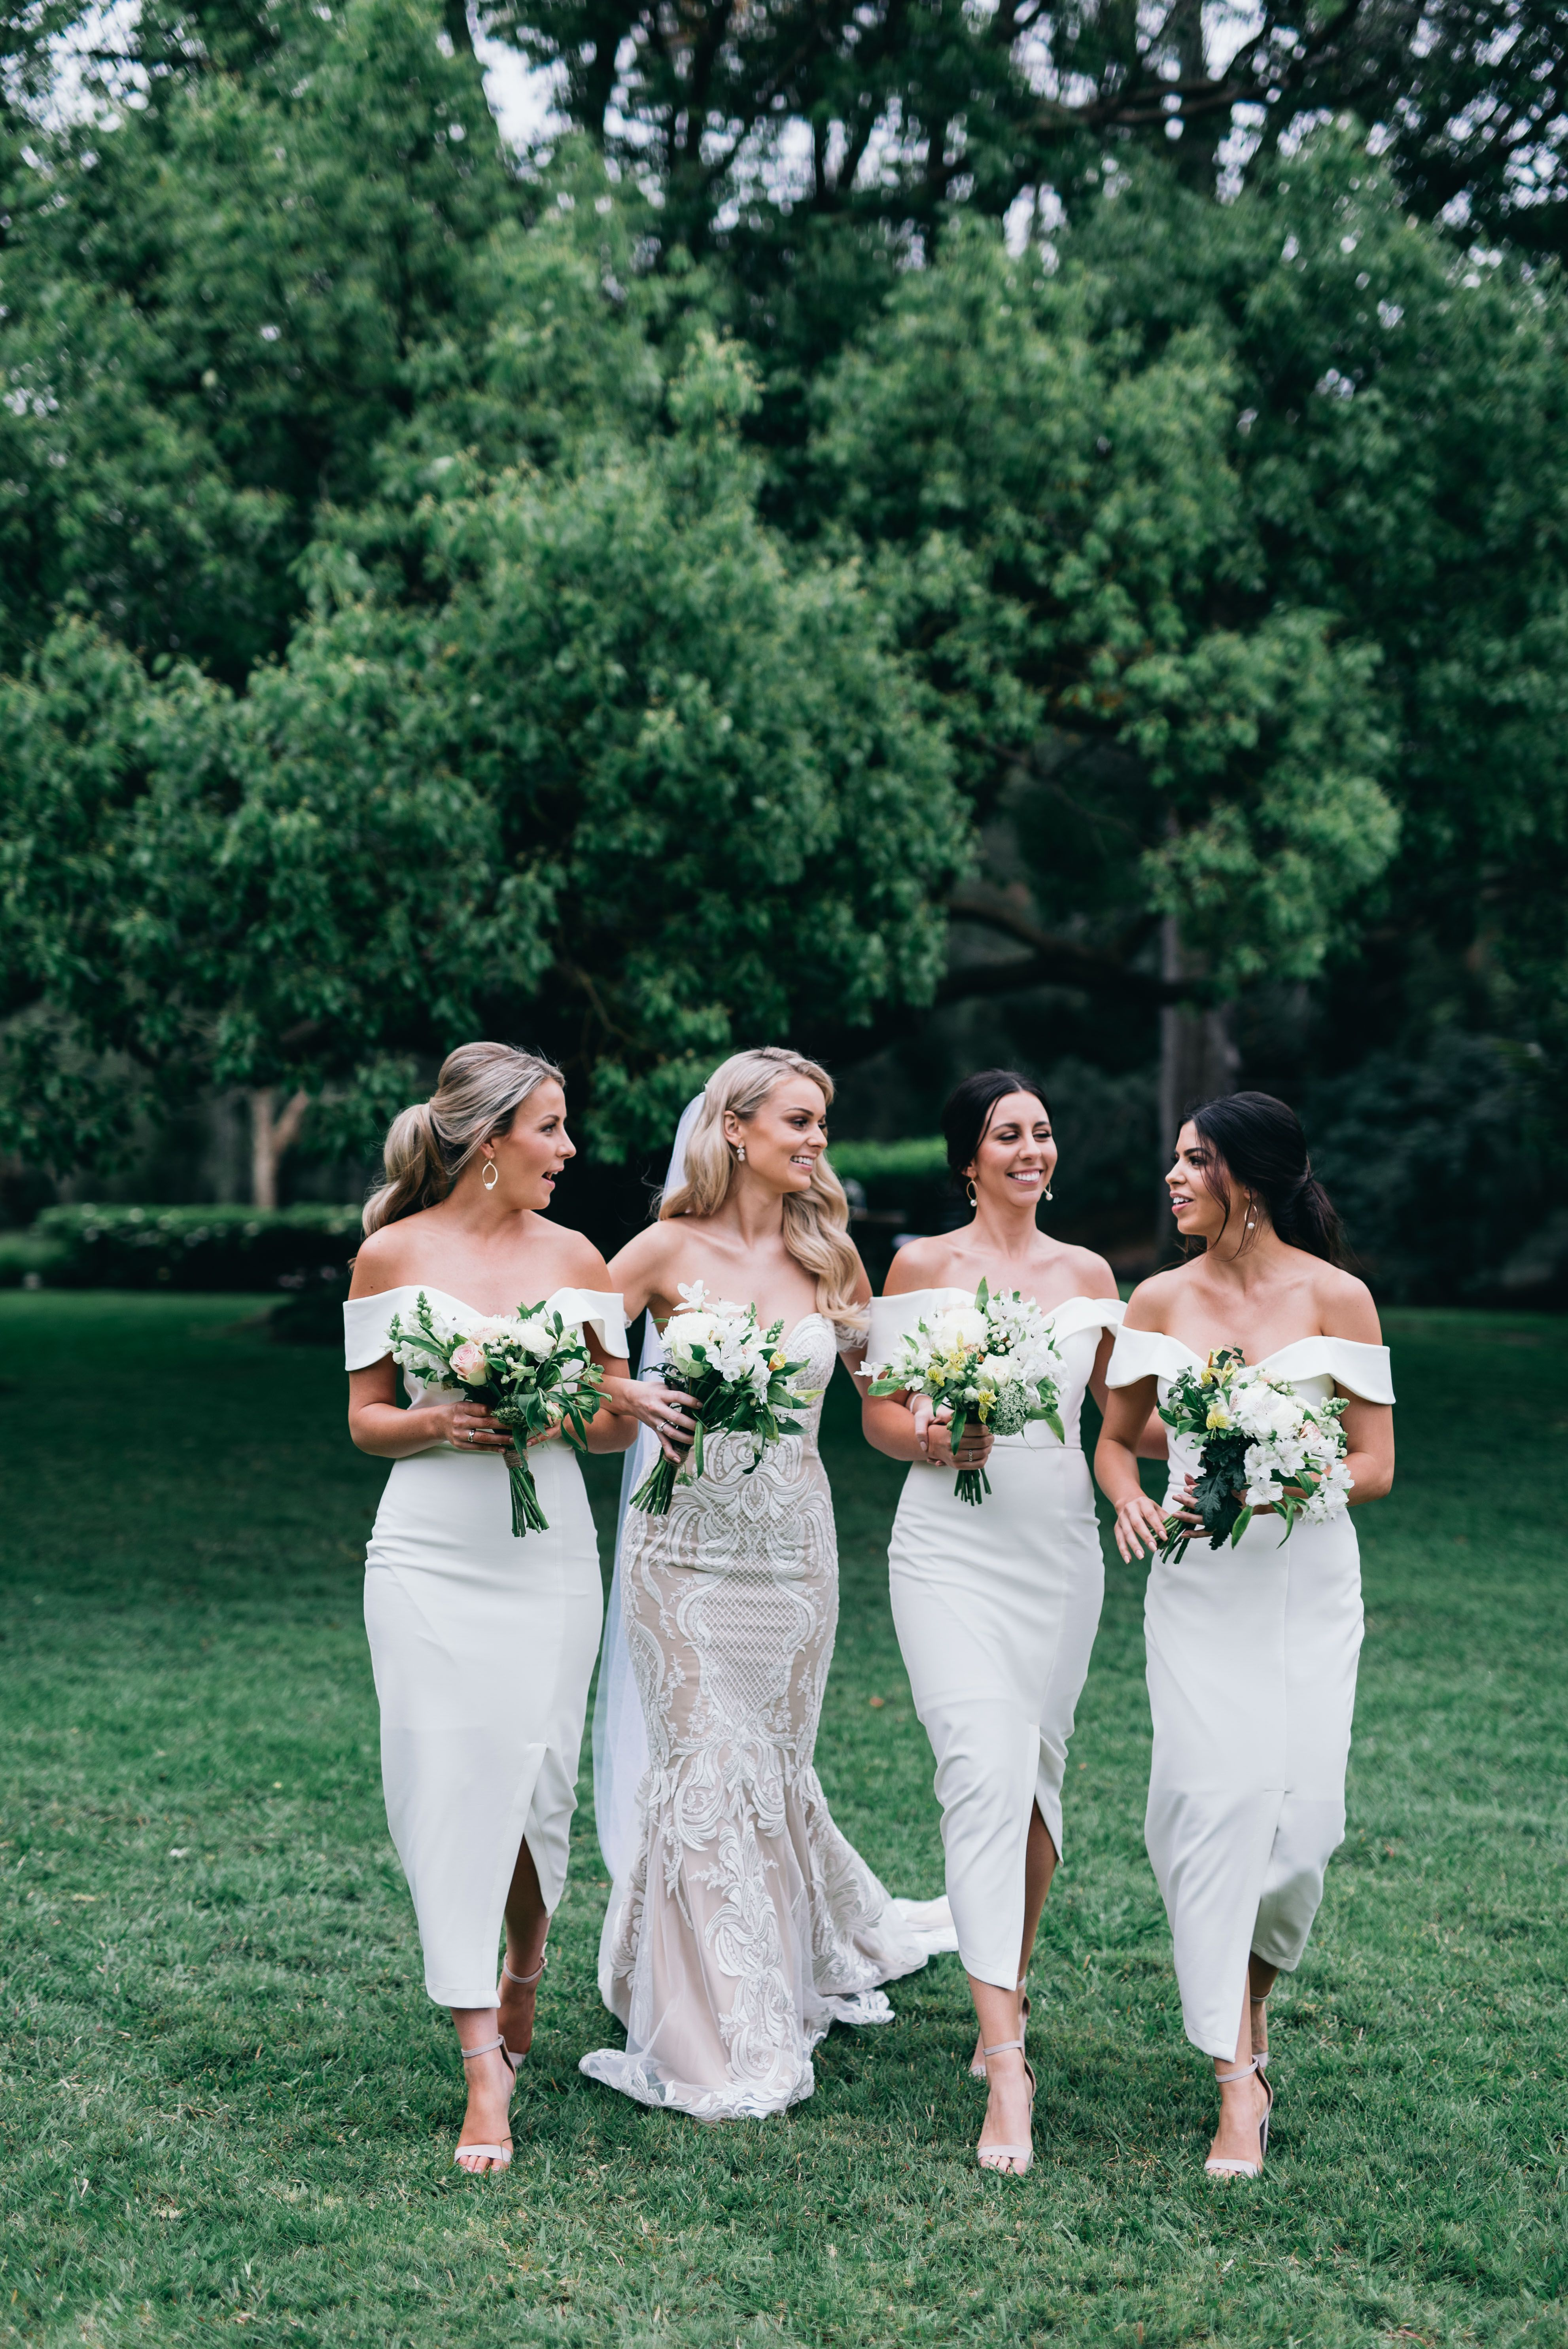 White Connelly Midi Bridesmaids Real Runway White Runway Blog Bridesmaid Dresses Ankle Length Midi Bridesmaid Dress White Bridesmaid Dresses [ 5939 x 3965 Pixel ]